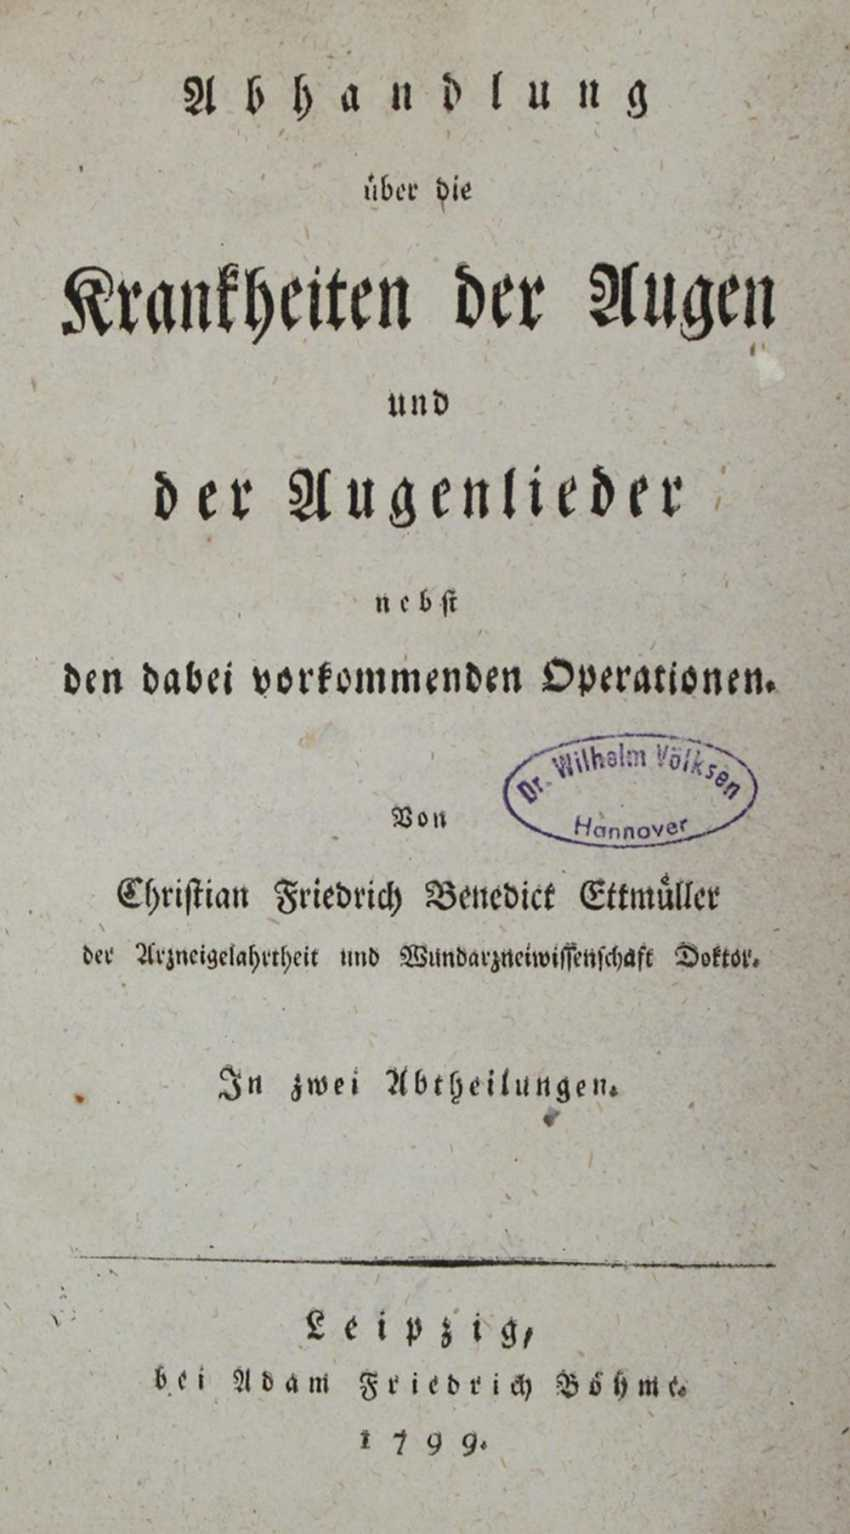 Ettmüller, C.F.B. - photo 1